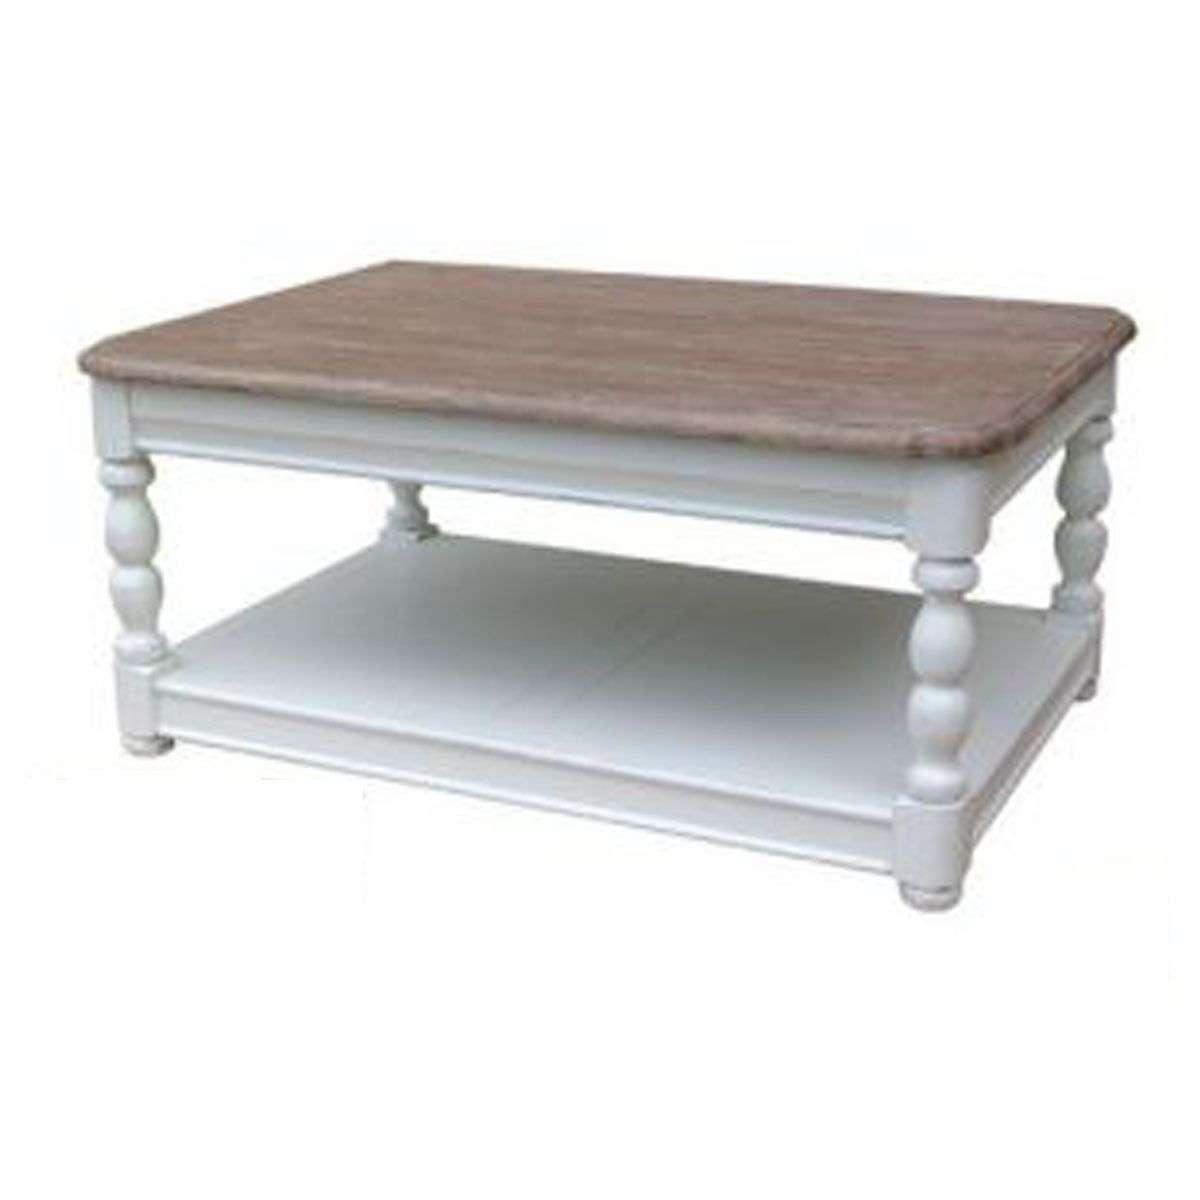 Coffee Tables Ideas: Cottage Style Coffee Table Ideas Cottage Pertaining To Most Up To Date White Cottage Style Coffee Tables (View 6 of 20)